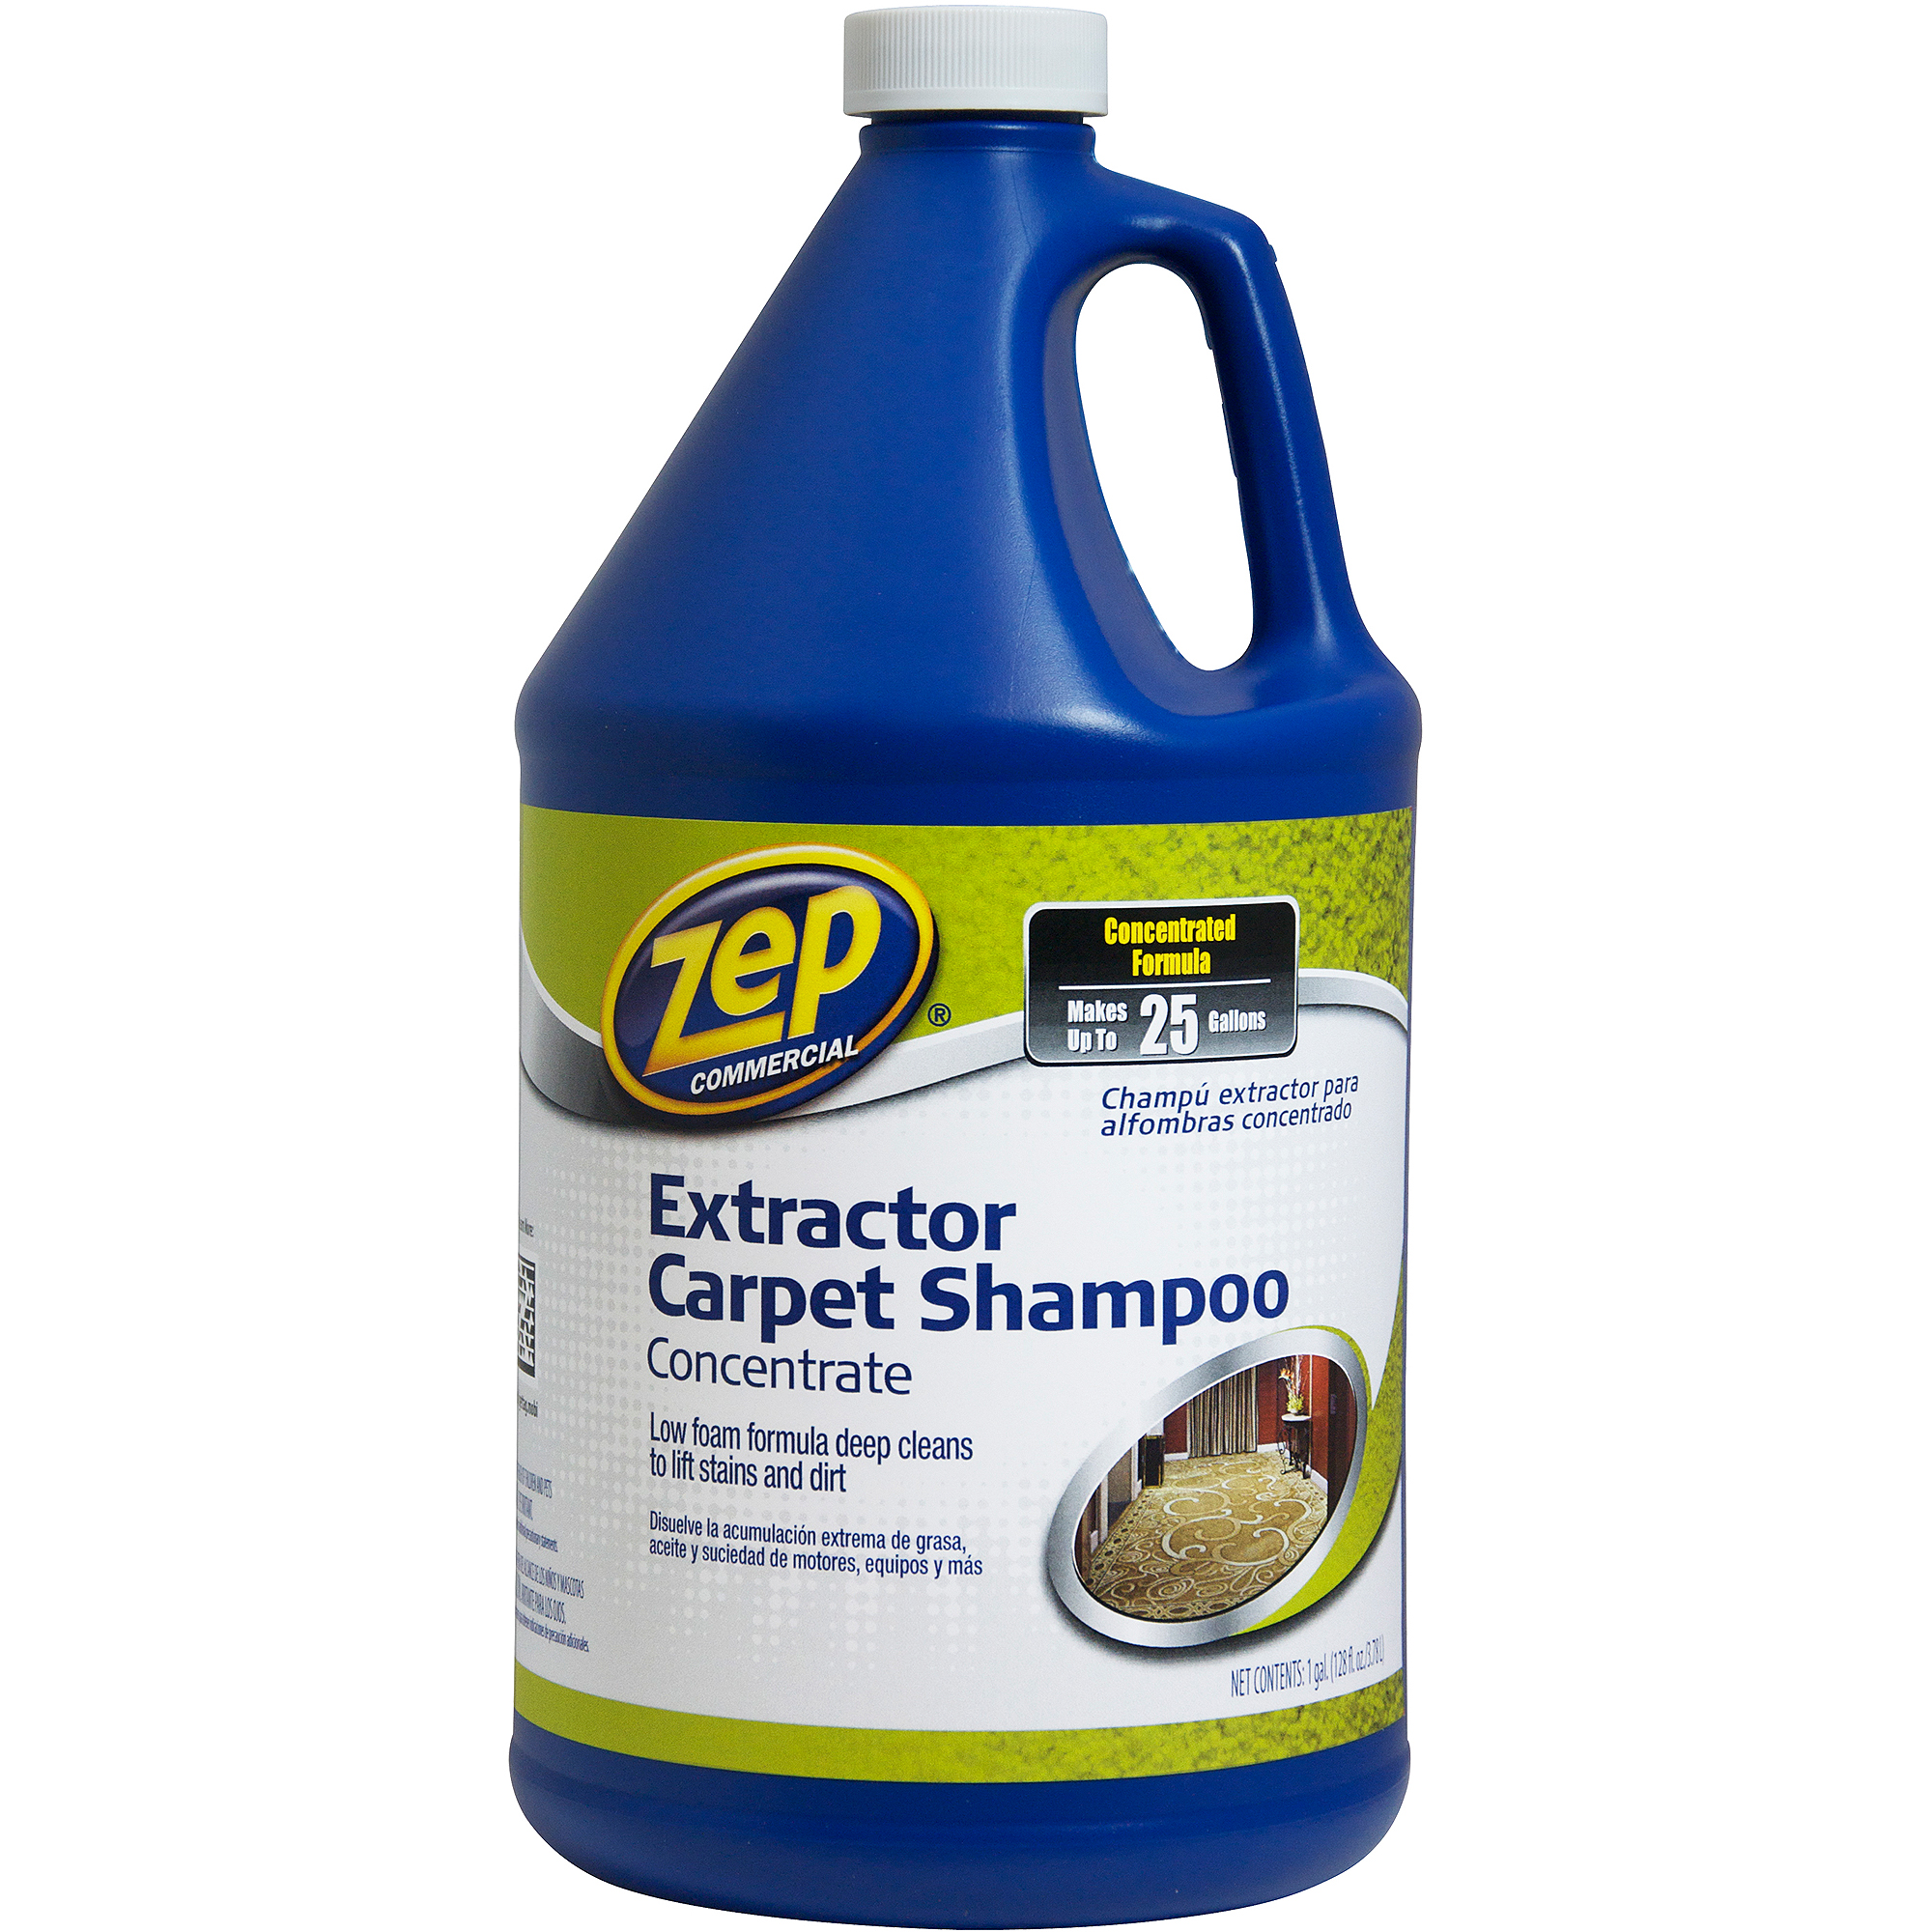 Zep Commercial Extractor Carpet Shampoo, 1 gal